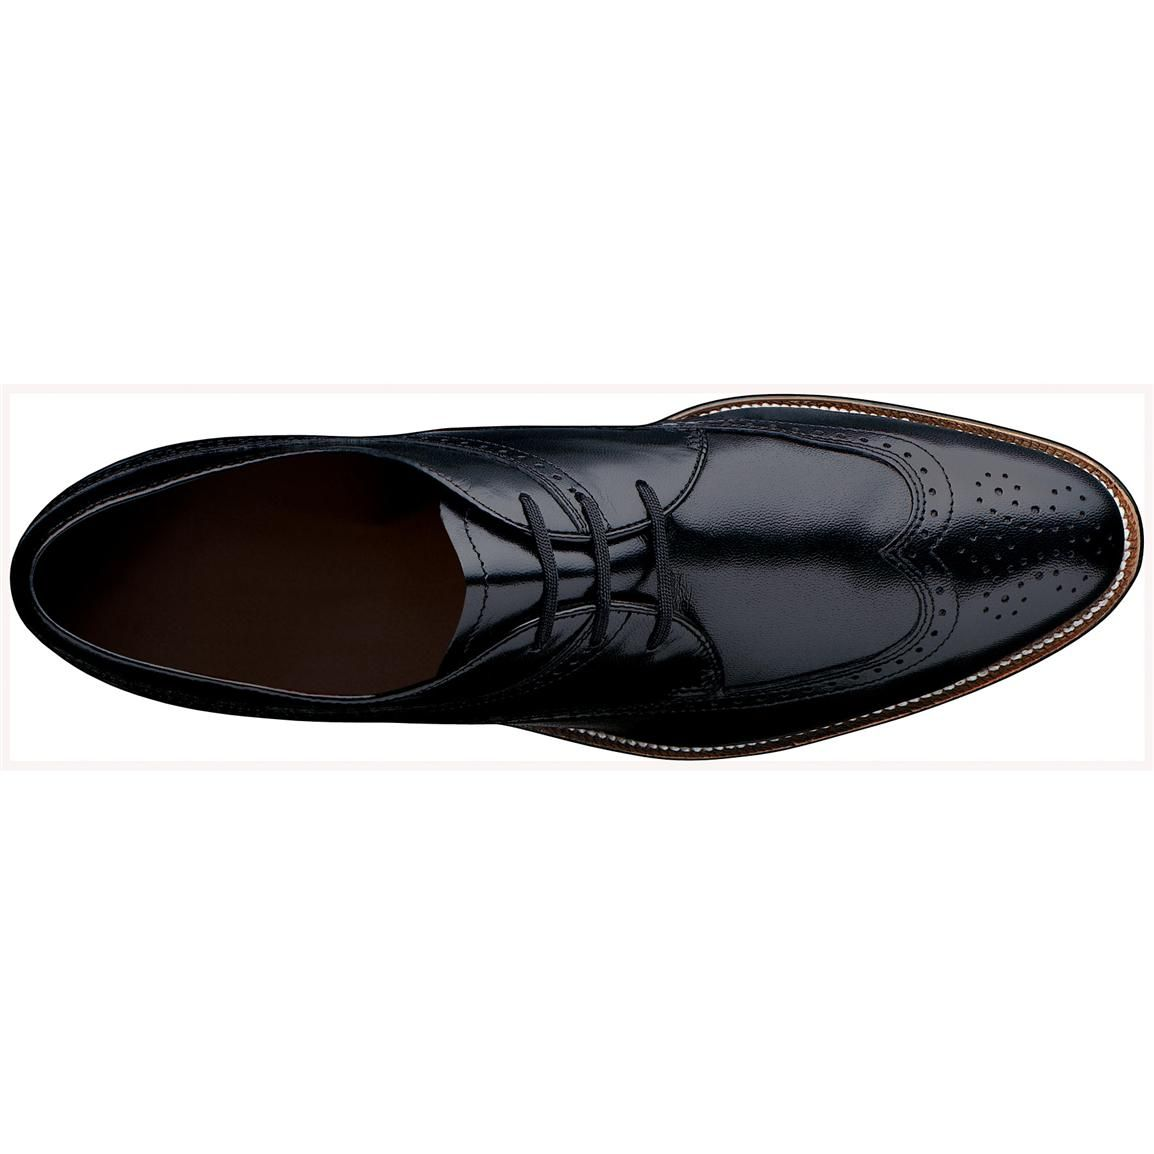 Image result for Stacy Adams shoes My Handsum Son E Pinterest